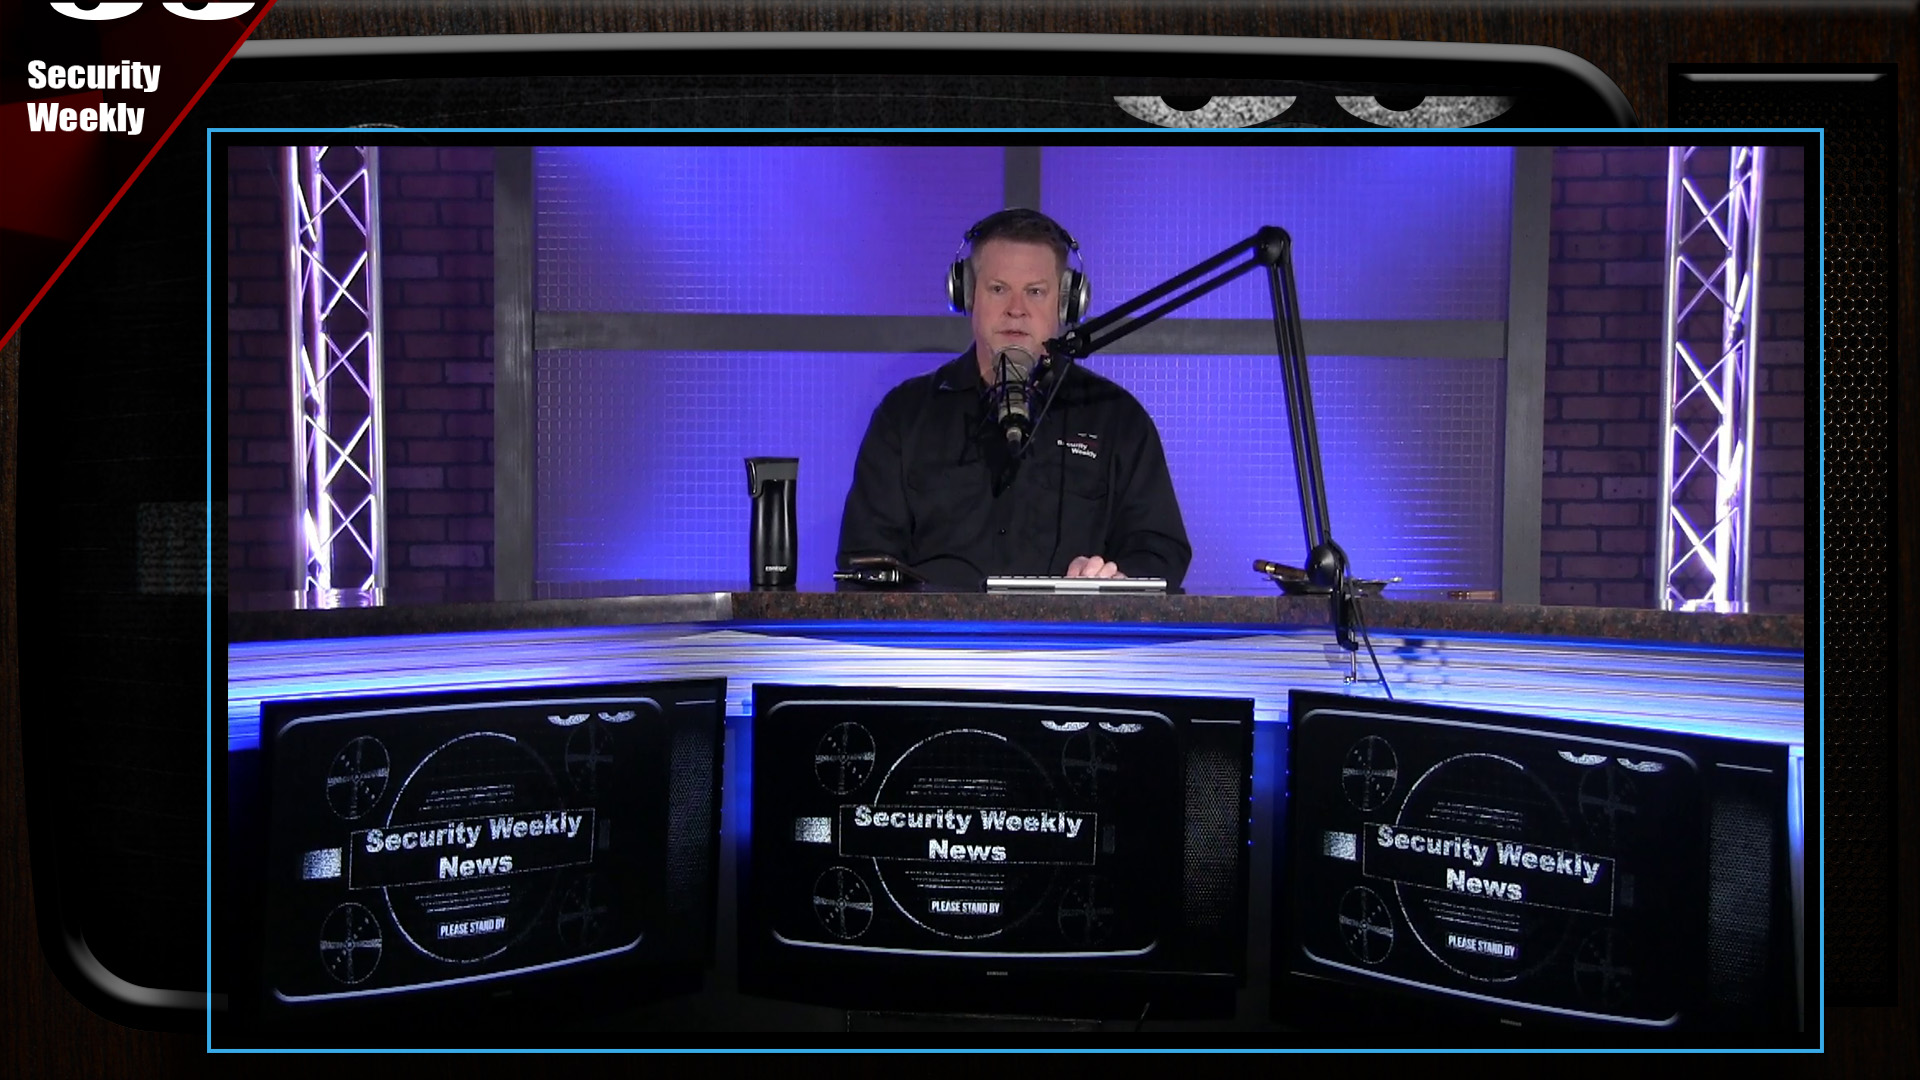 Artwork for Security Weekly News Wrap Up - SWN #16